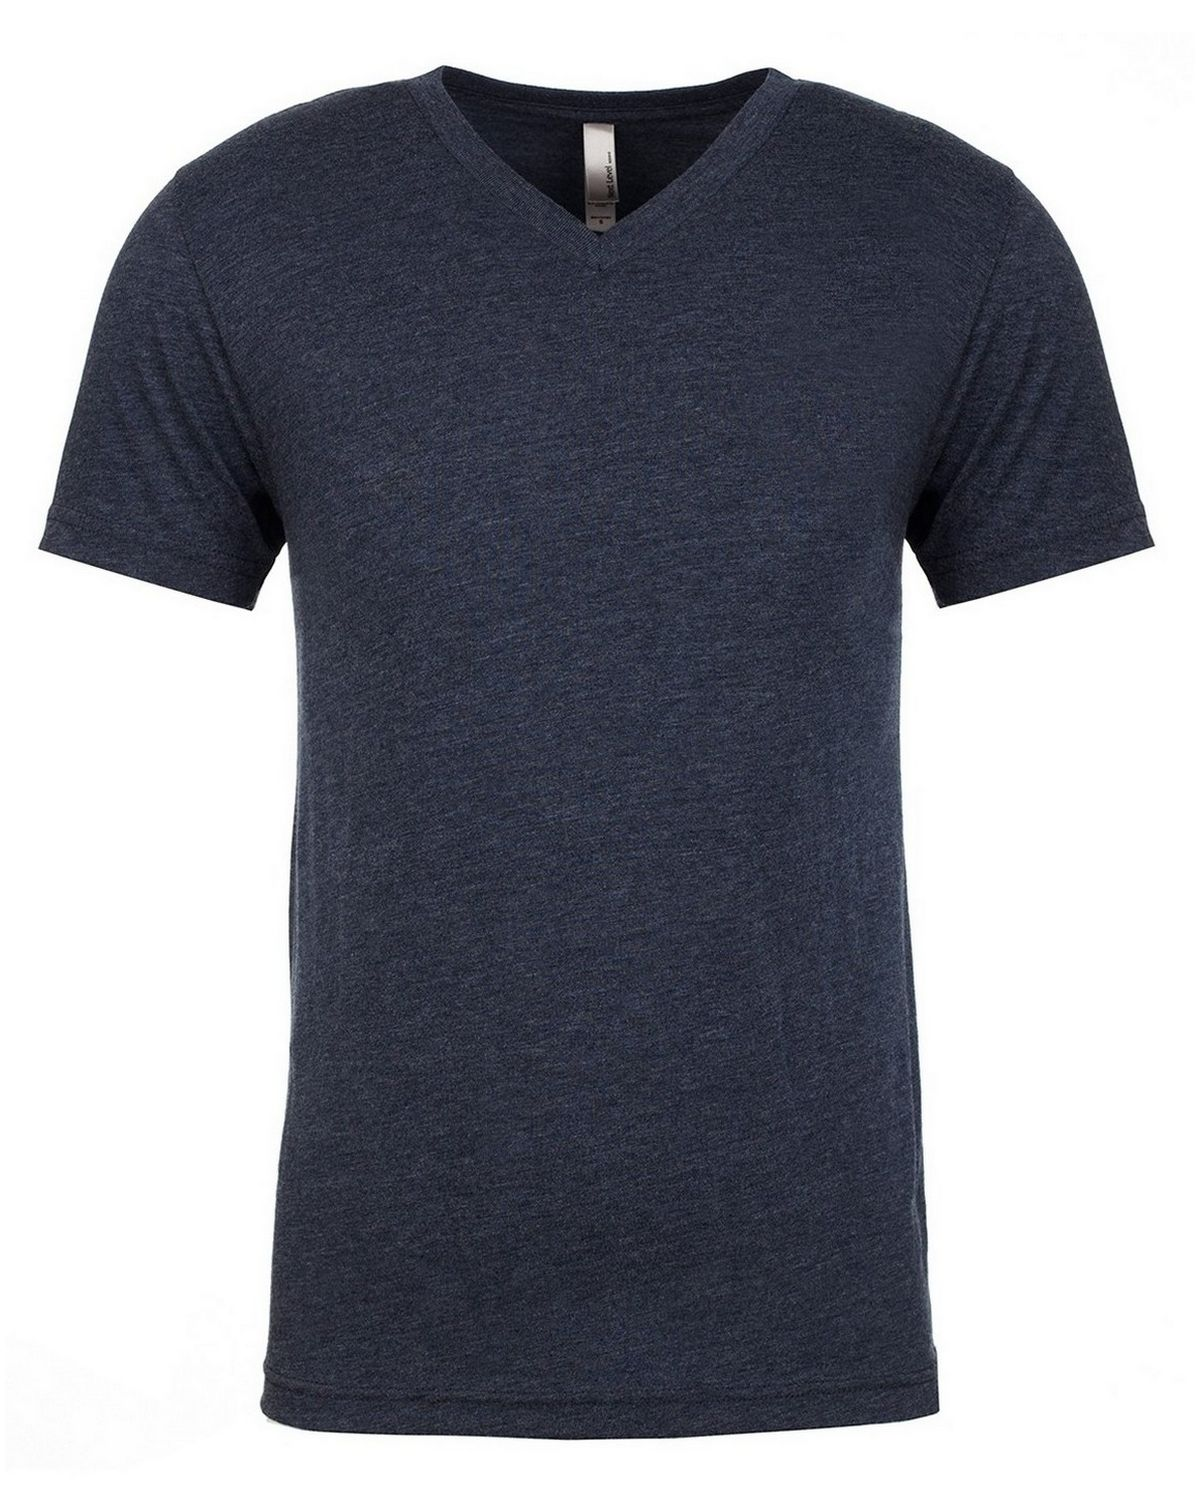 Next Level NL6040 Mens V-Neck Tee - Vintage Navy - 2X NL6040